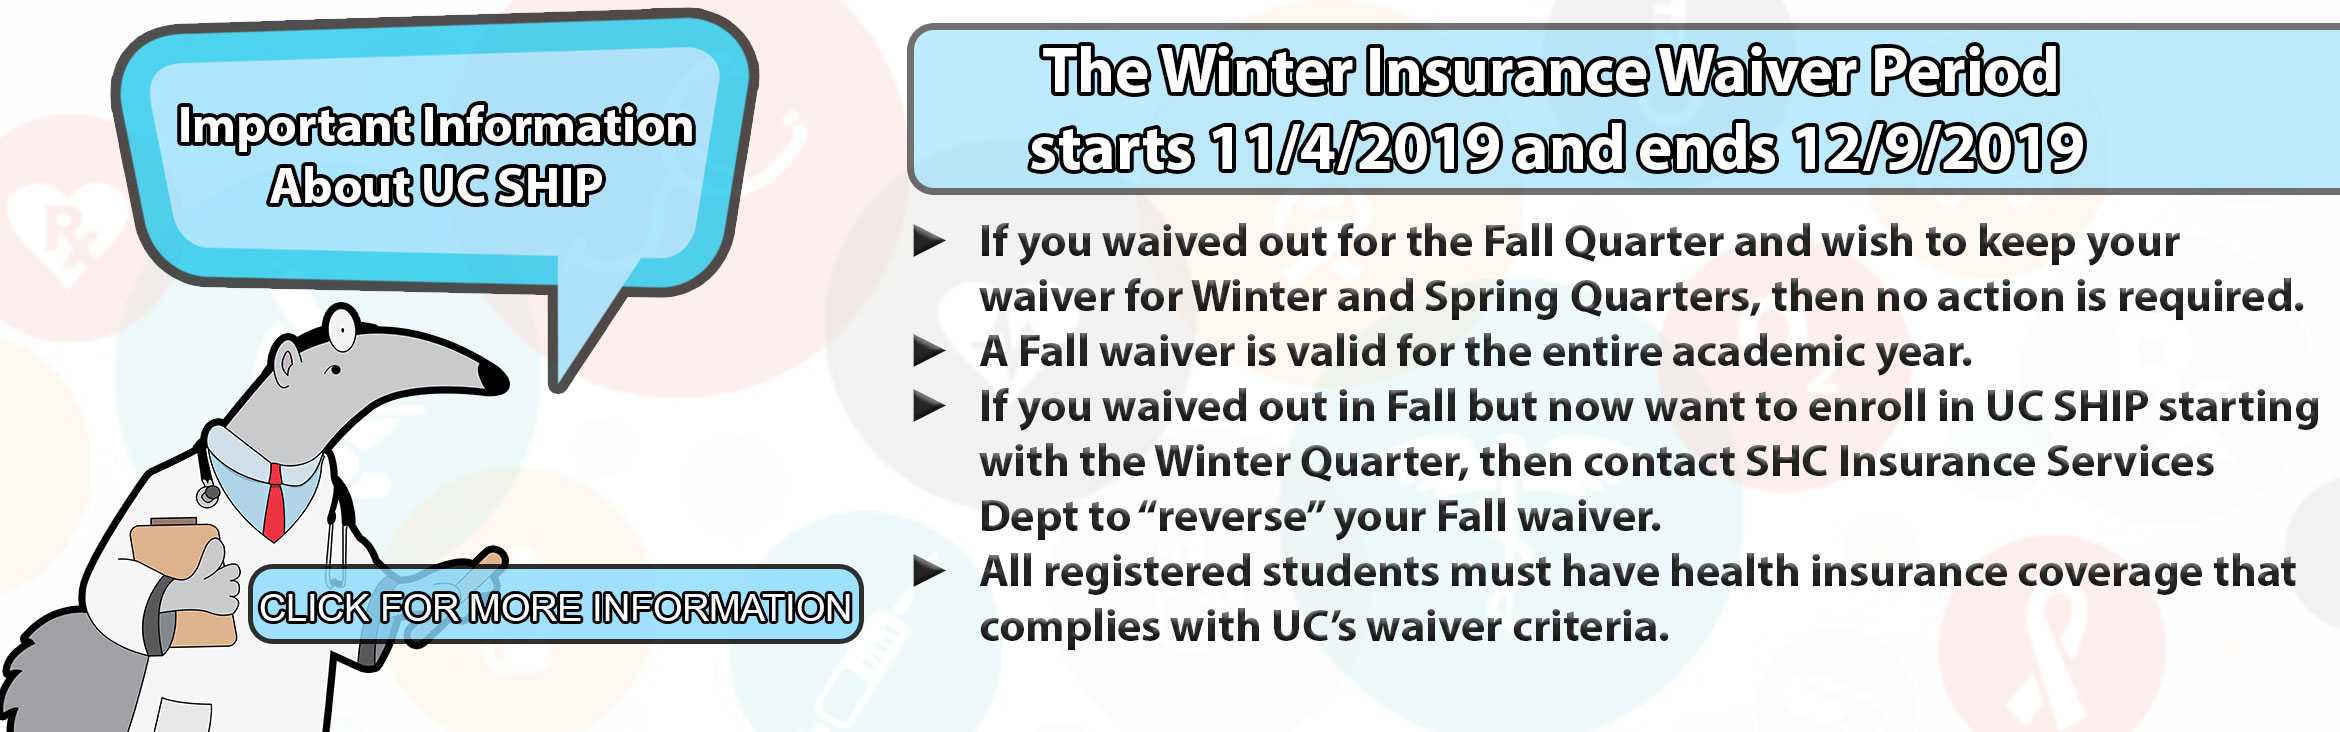 The Winter Insurance Waiver Period starts 11/4/2019 and ends 12/9/2019